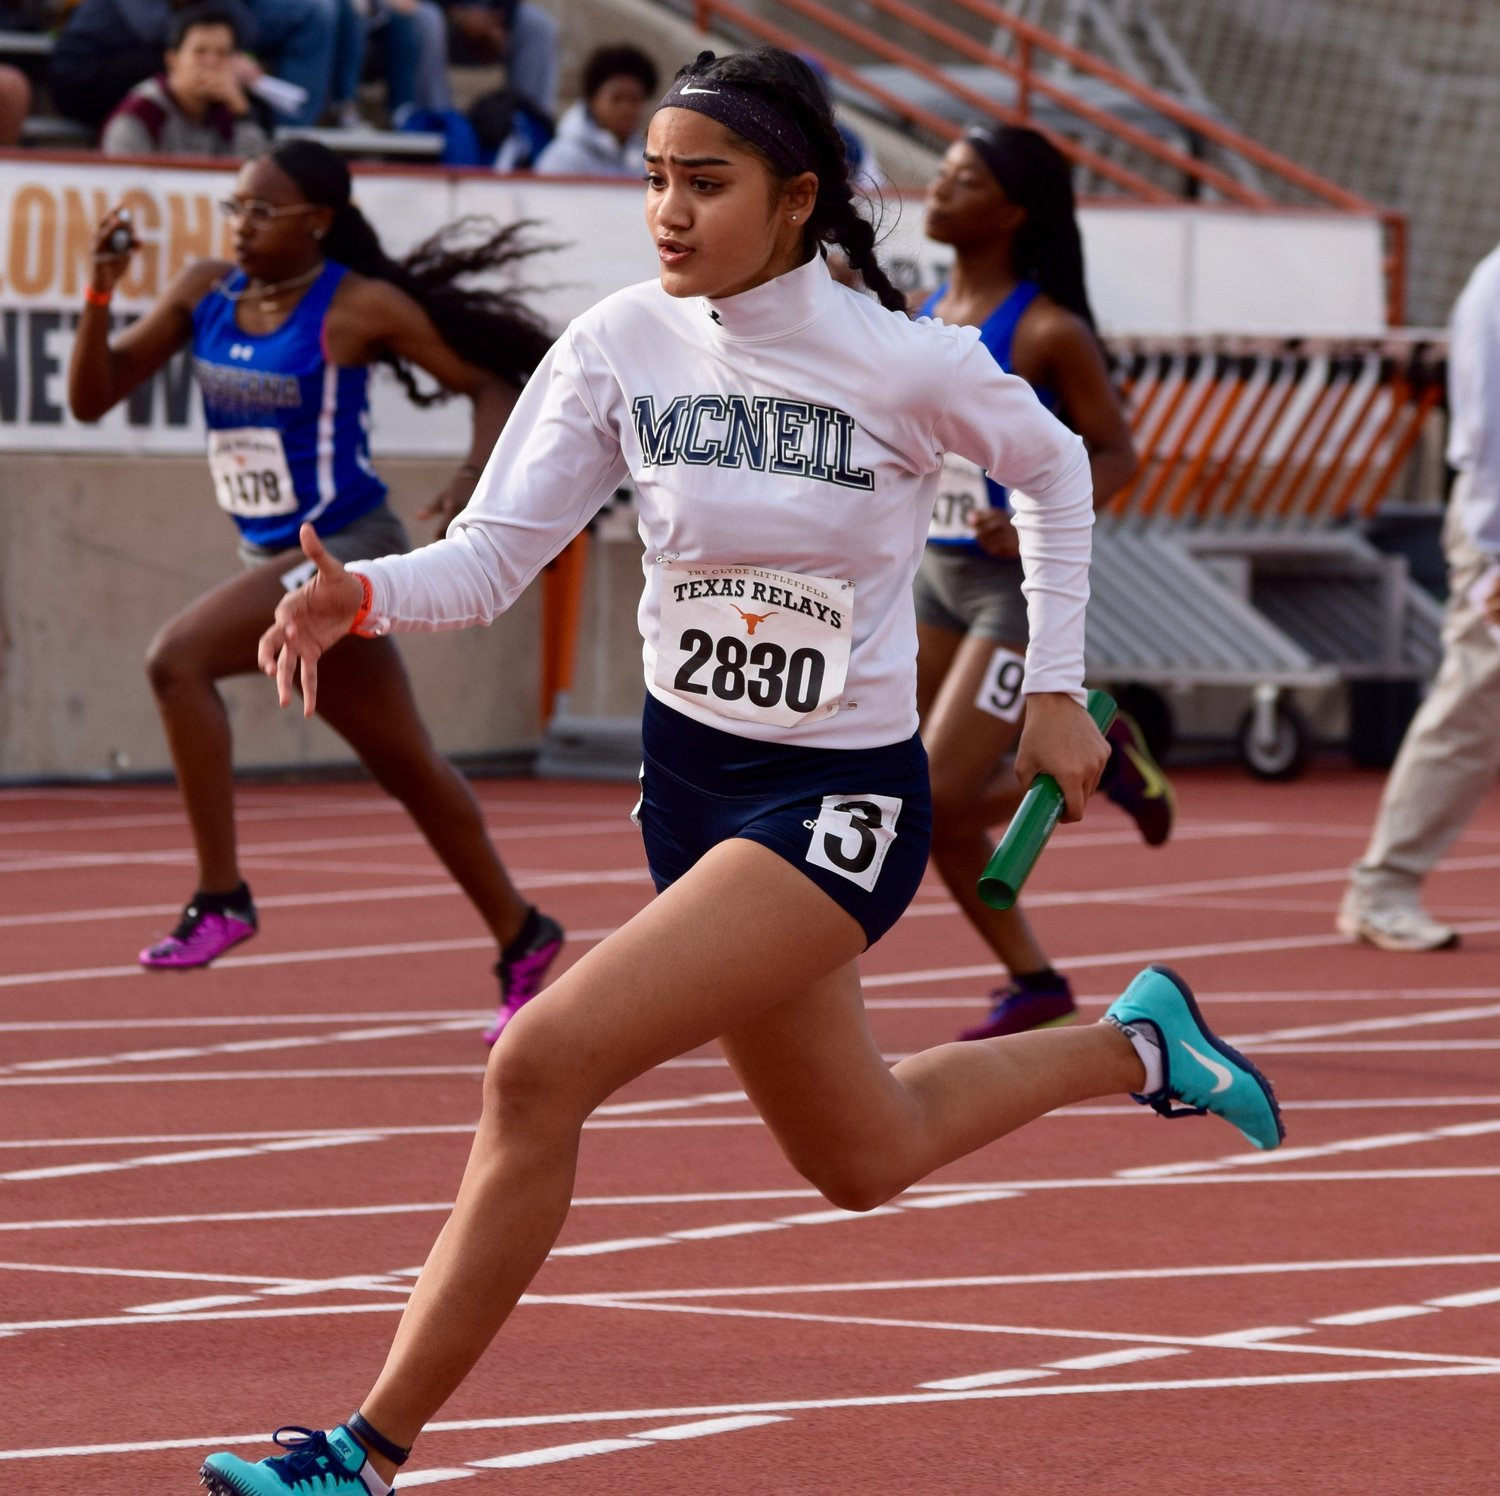 Tripti Tiwari and the McNeil girls' relay team competed at the Texas Relays on Saturday at the University of Texas.